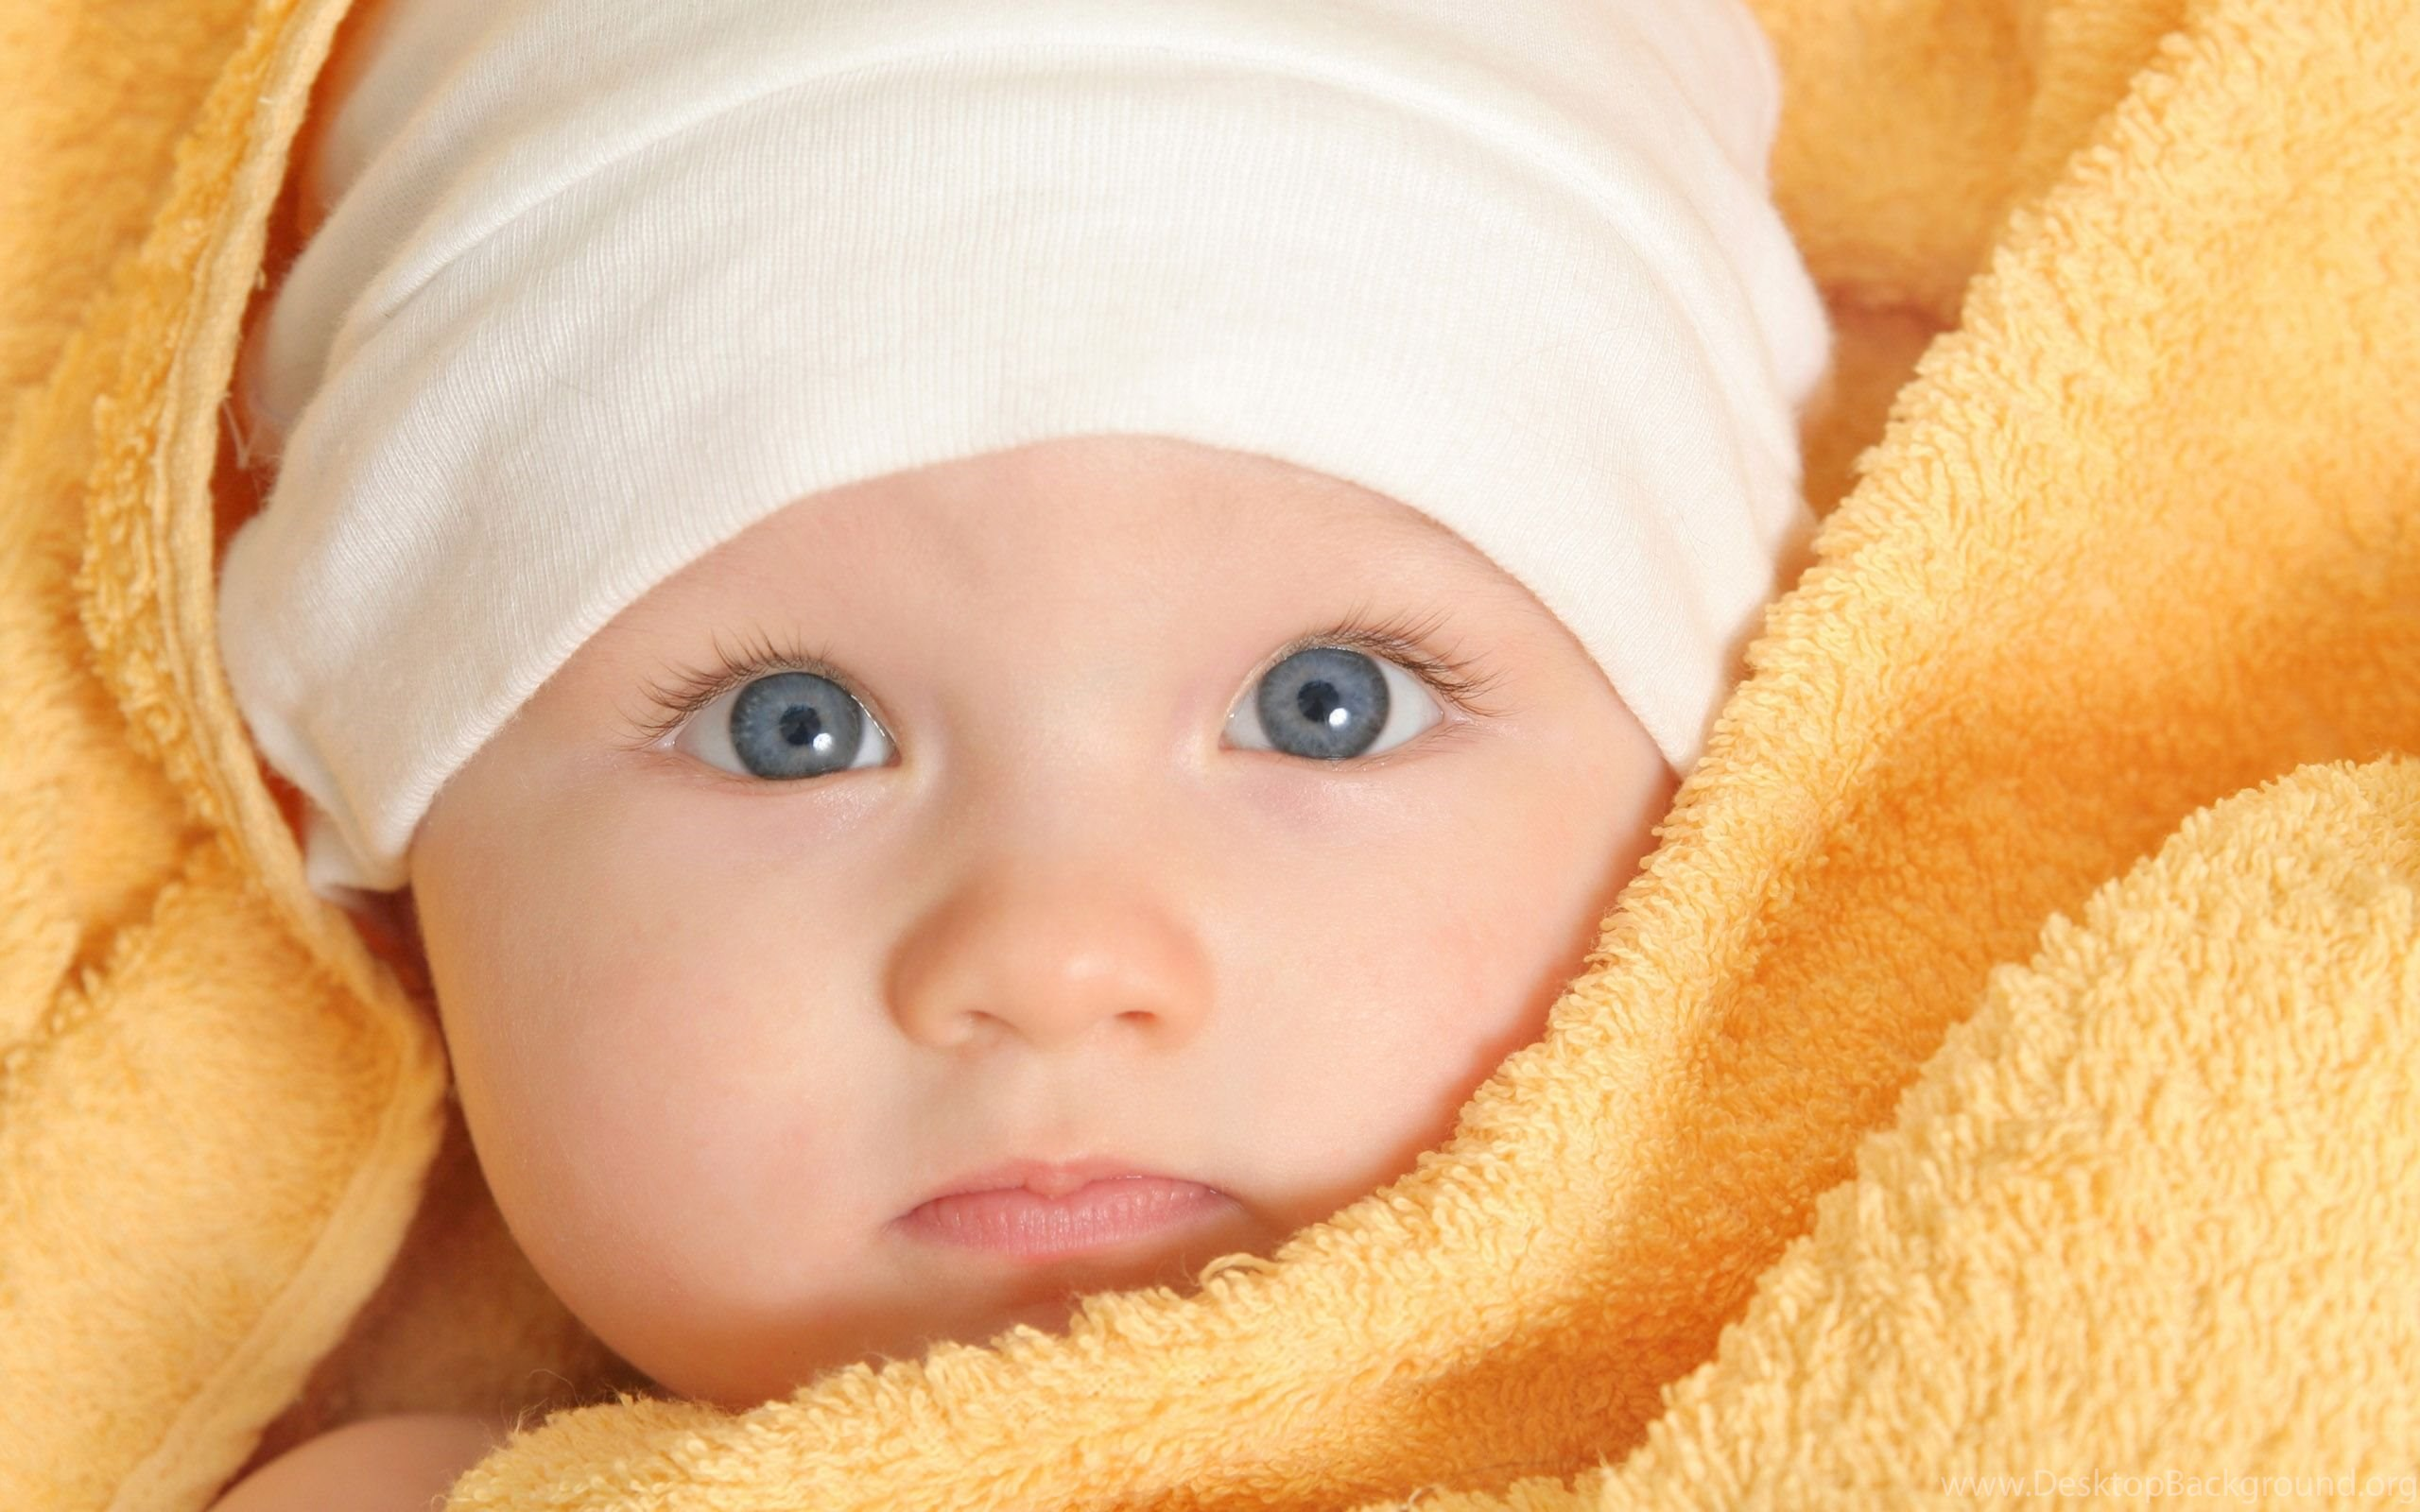 cute baby wallpapers high quality hd 6815 hd wallpapers site desktop